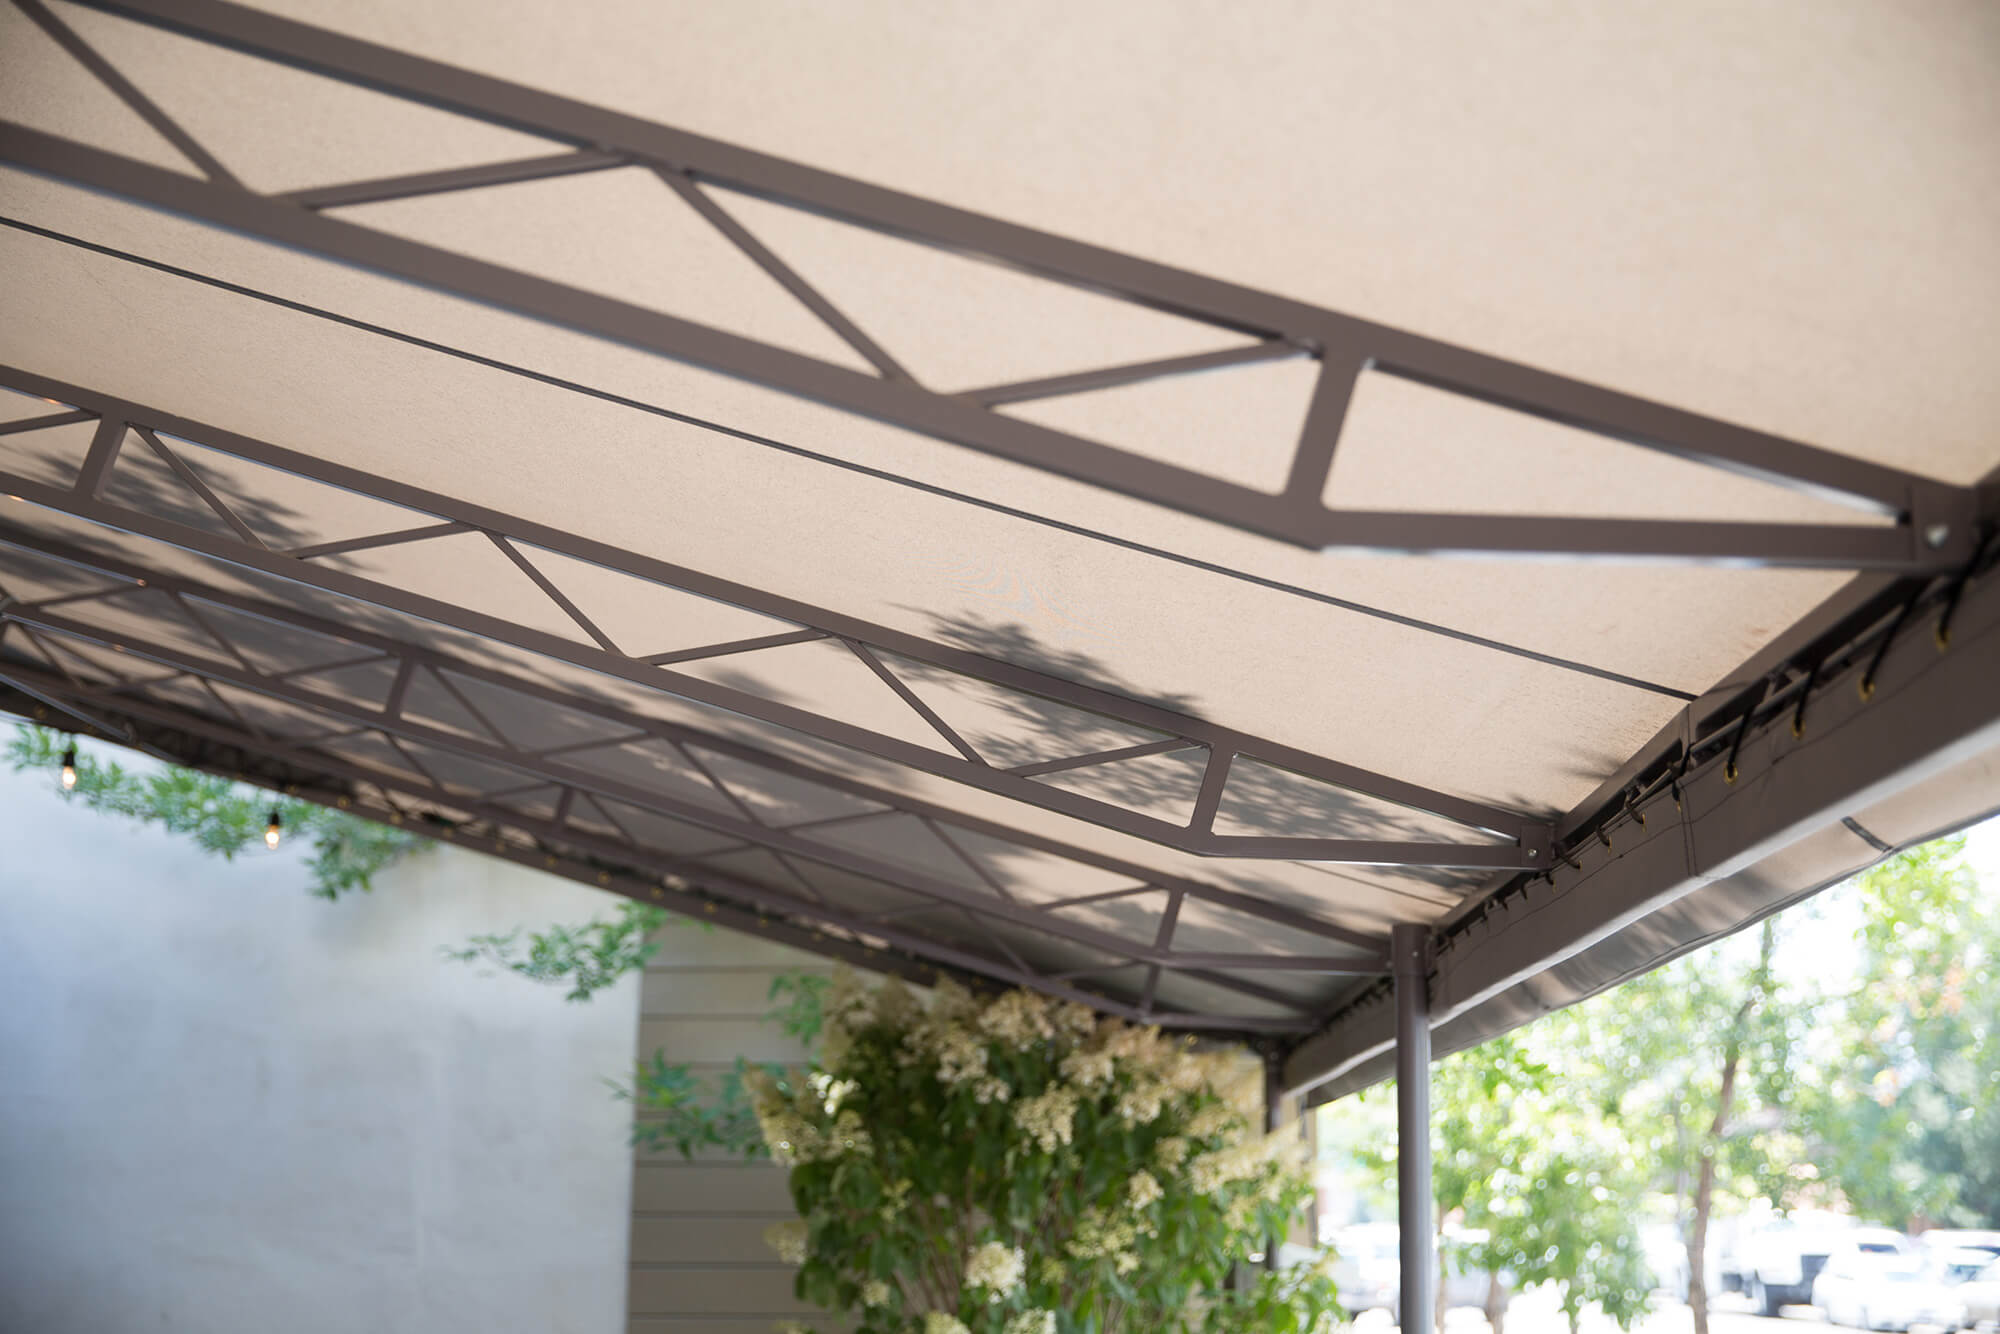 Detail of underneath fixed awning with beige Sunbrella fabric